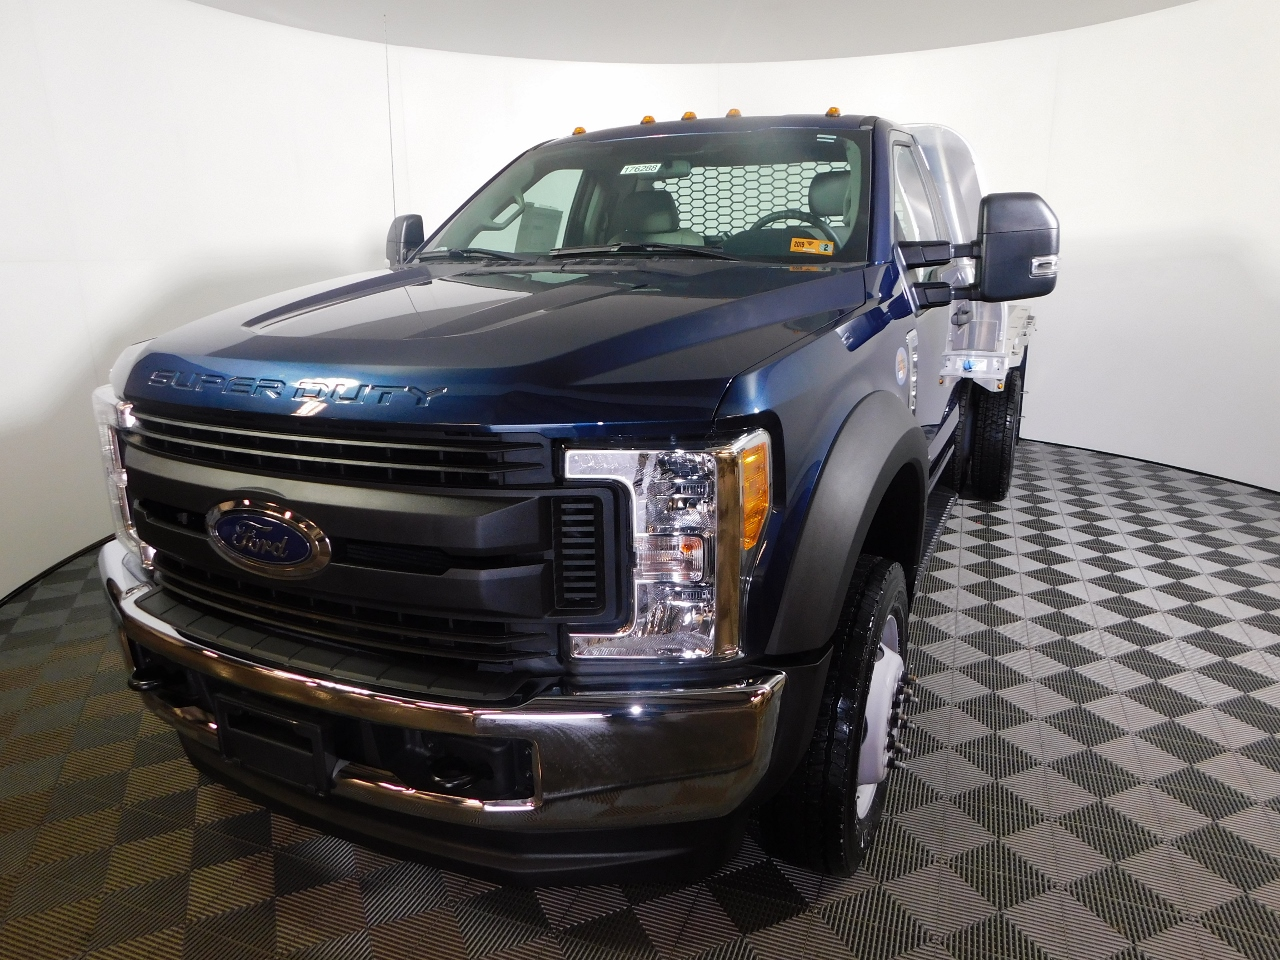 2017 F-550 Regular Cab DRW 4x4,  Knapheide Aluminum PGNB Gooseneck Platform Body #176288 - photo 1